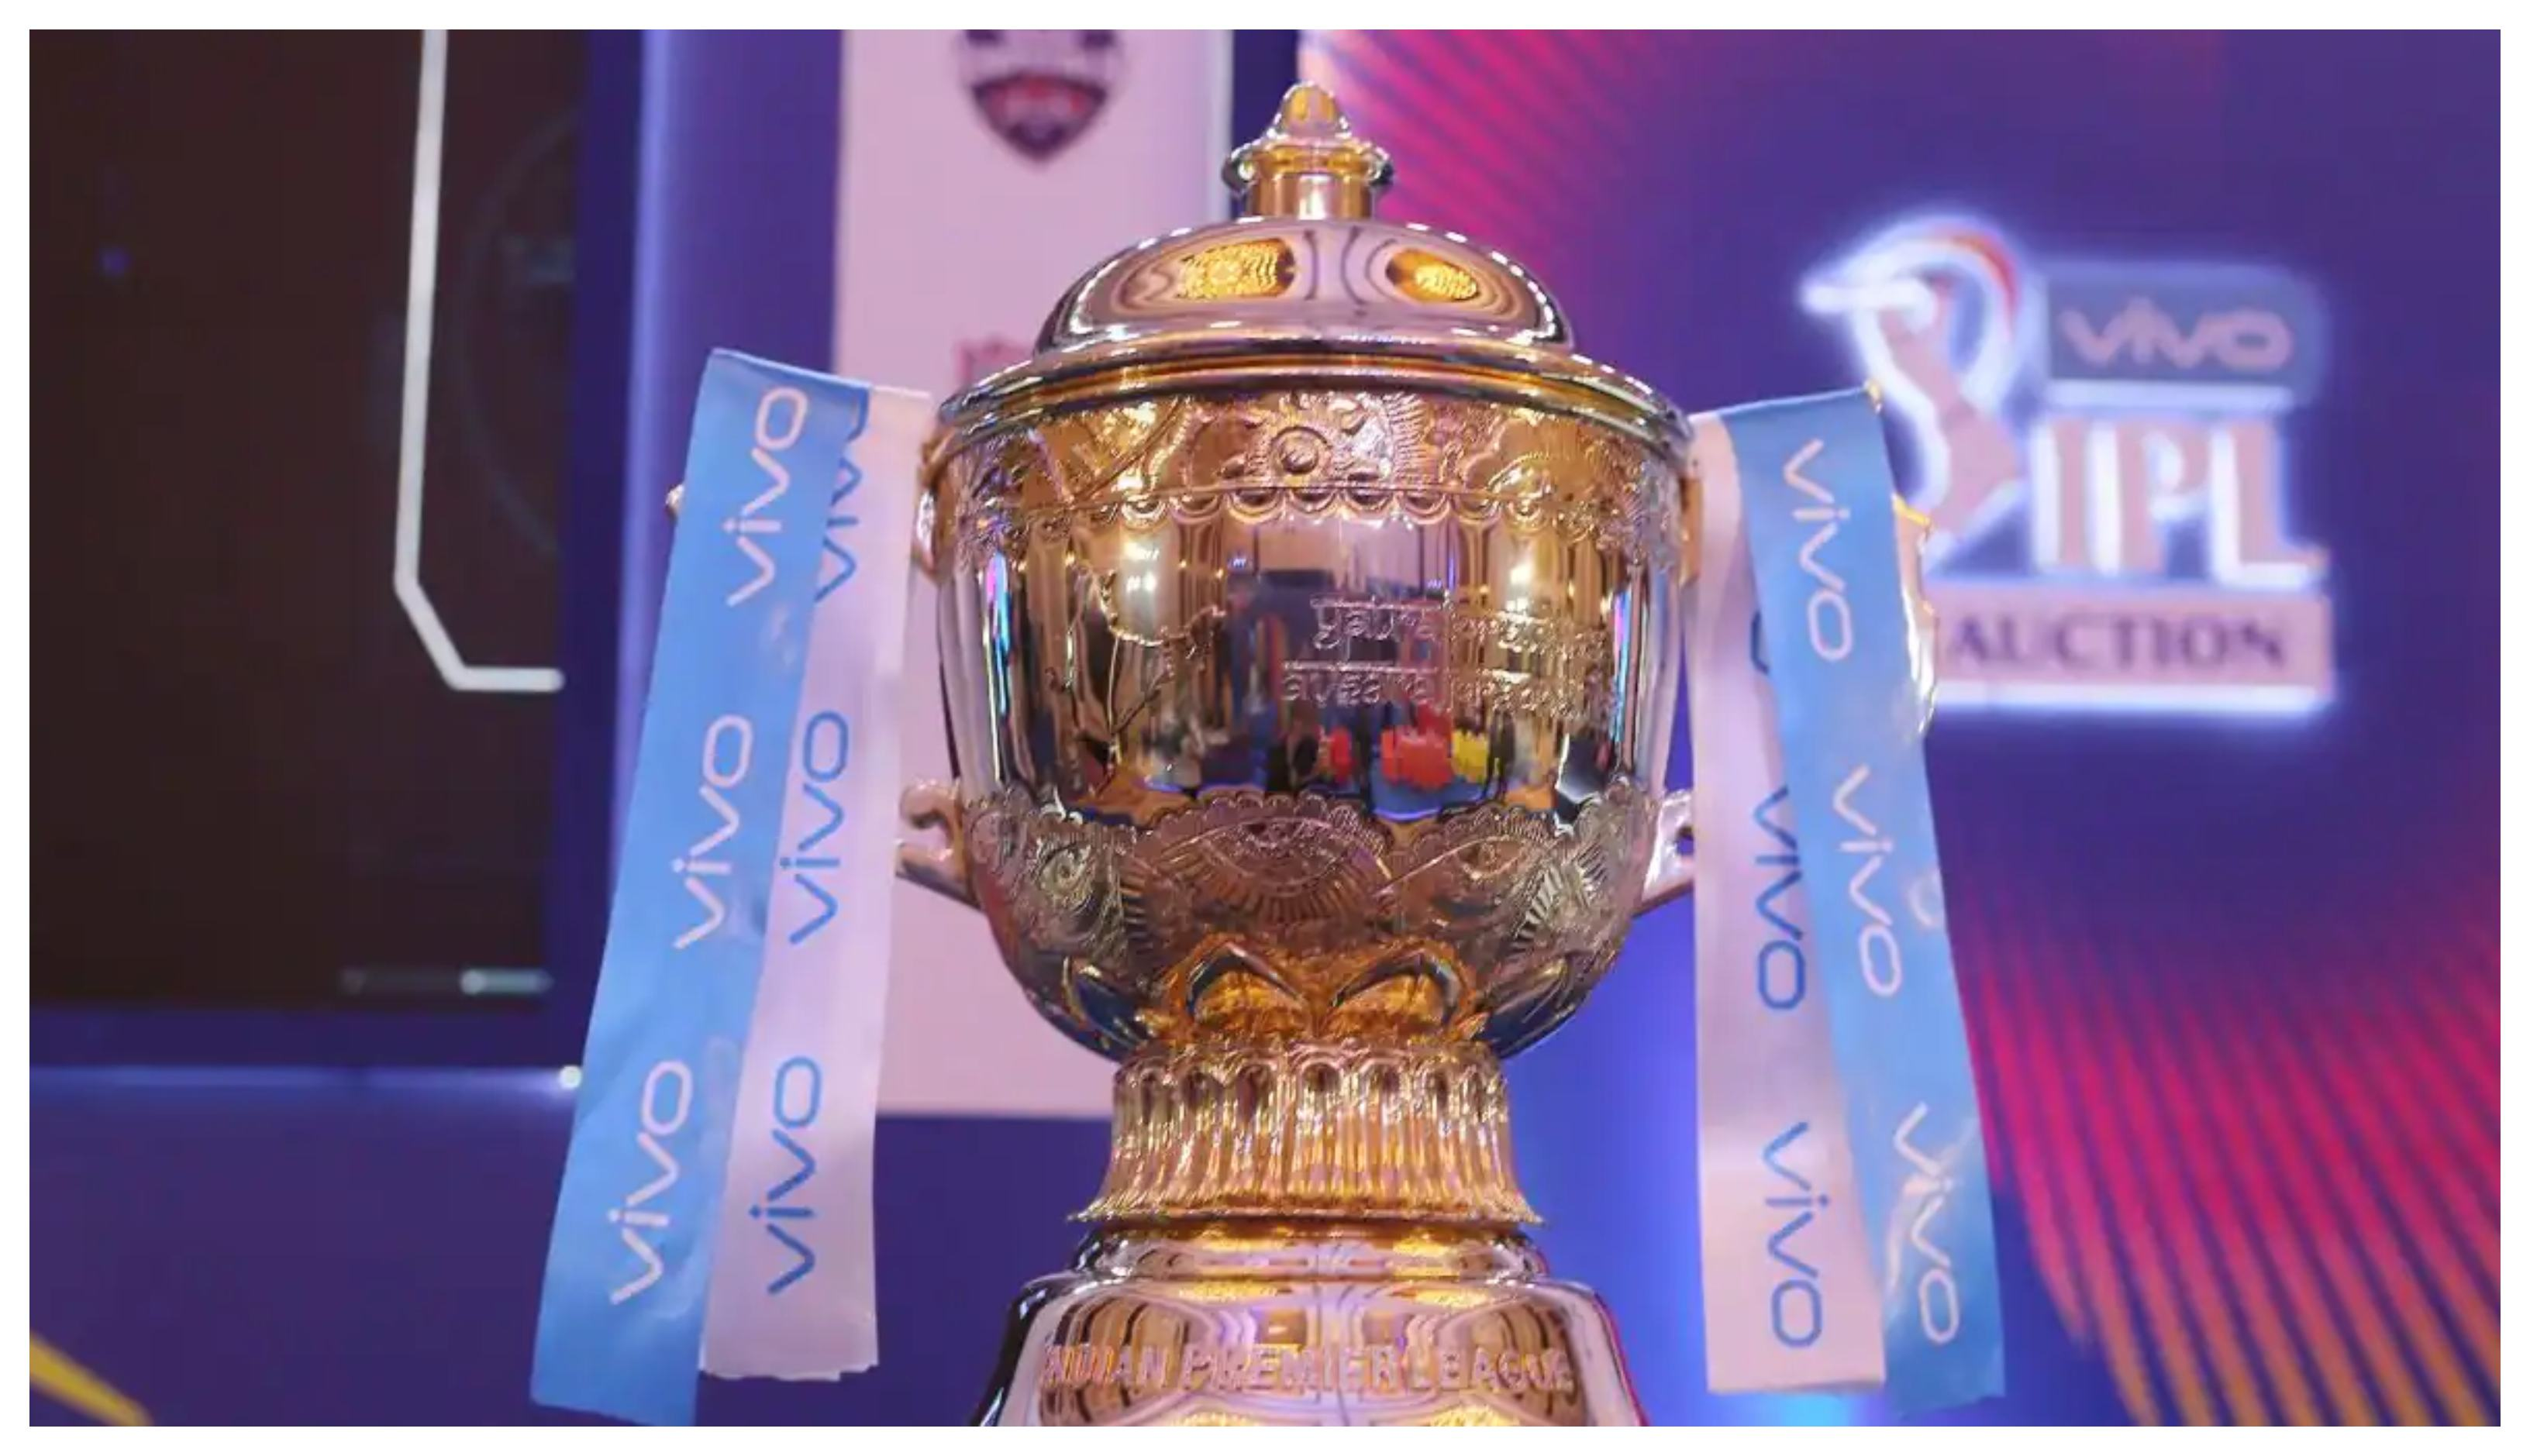 IPL 2022 is likely to be a 10-team competition | BCCI